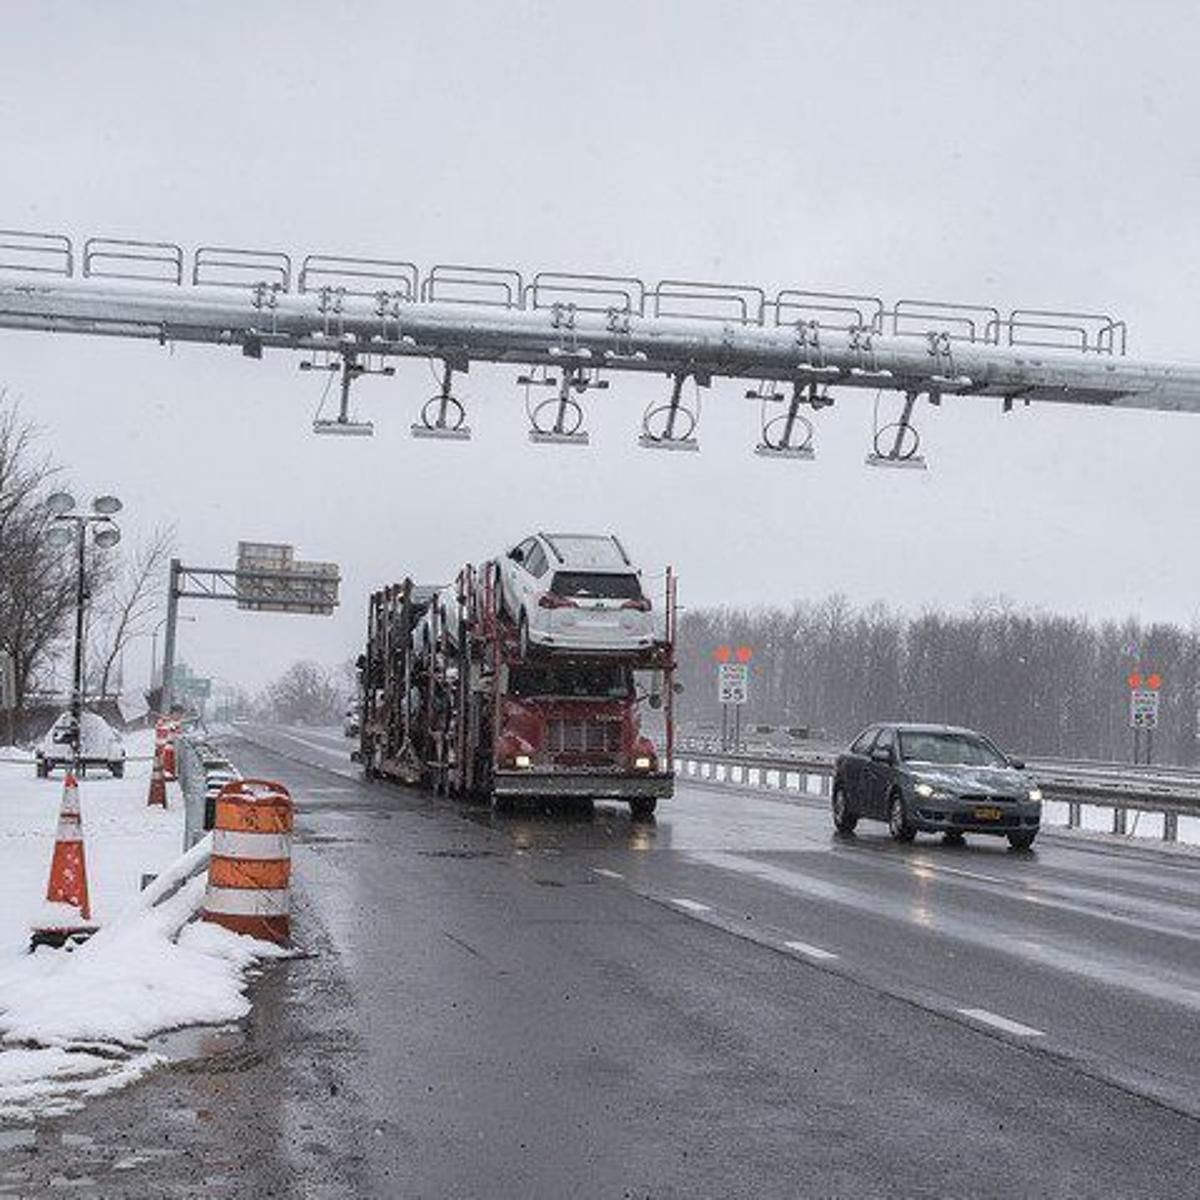 Lawsuit targets toll collection practices on Grand Island